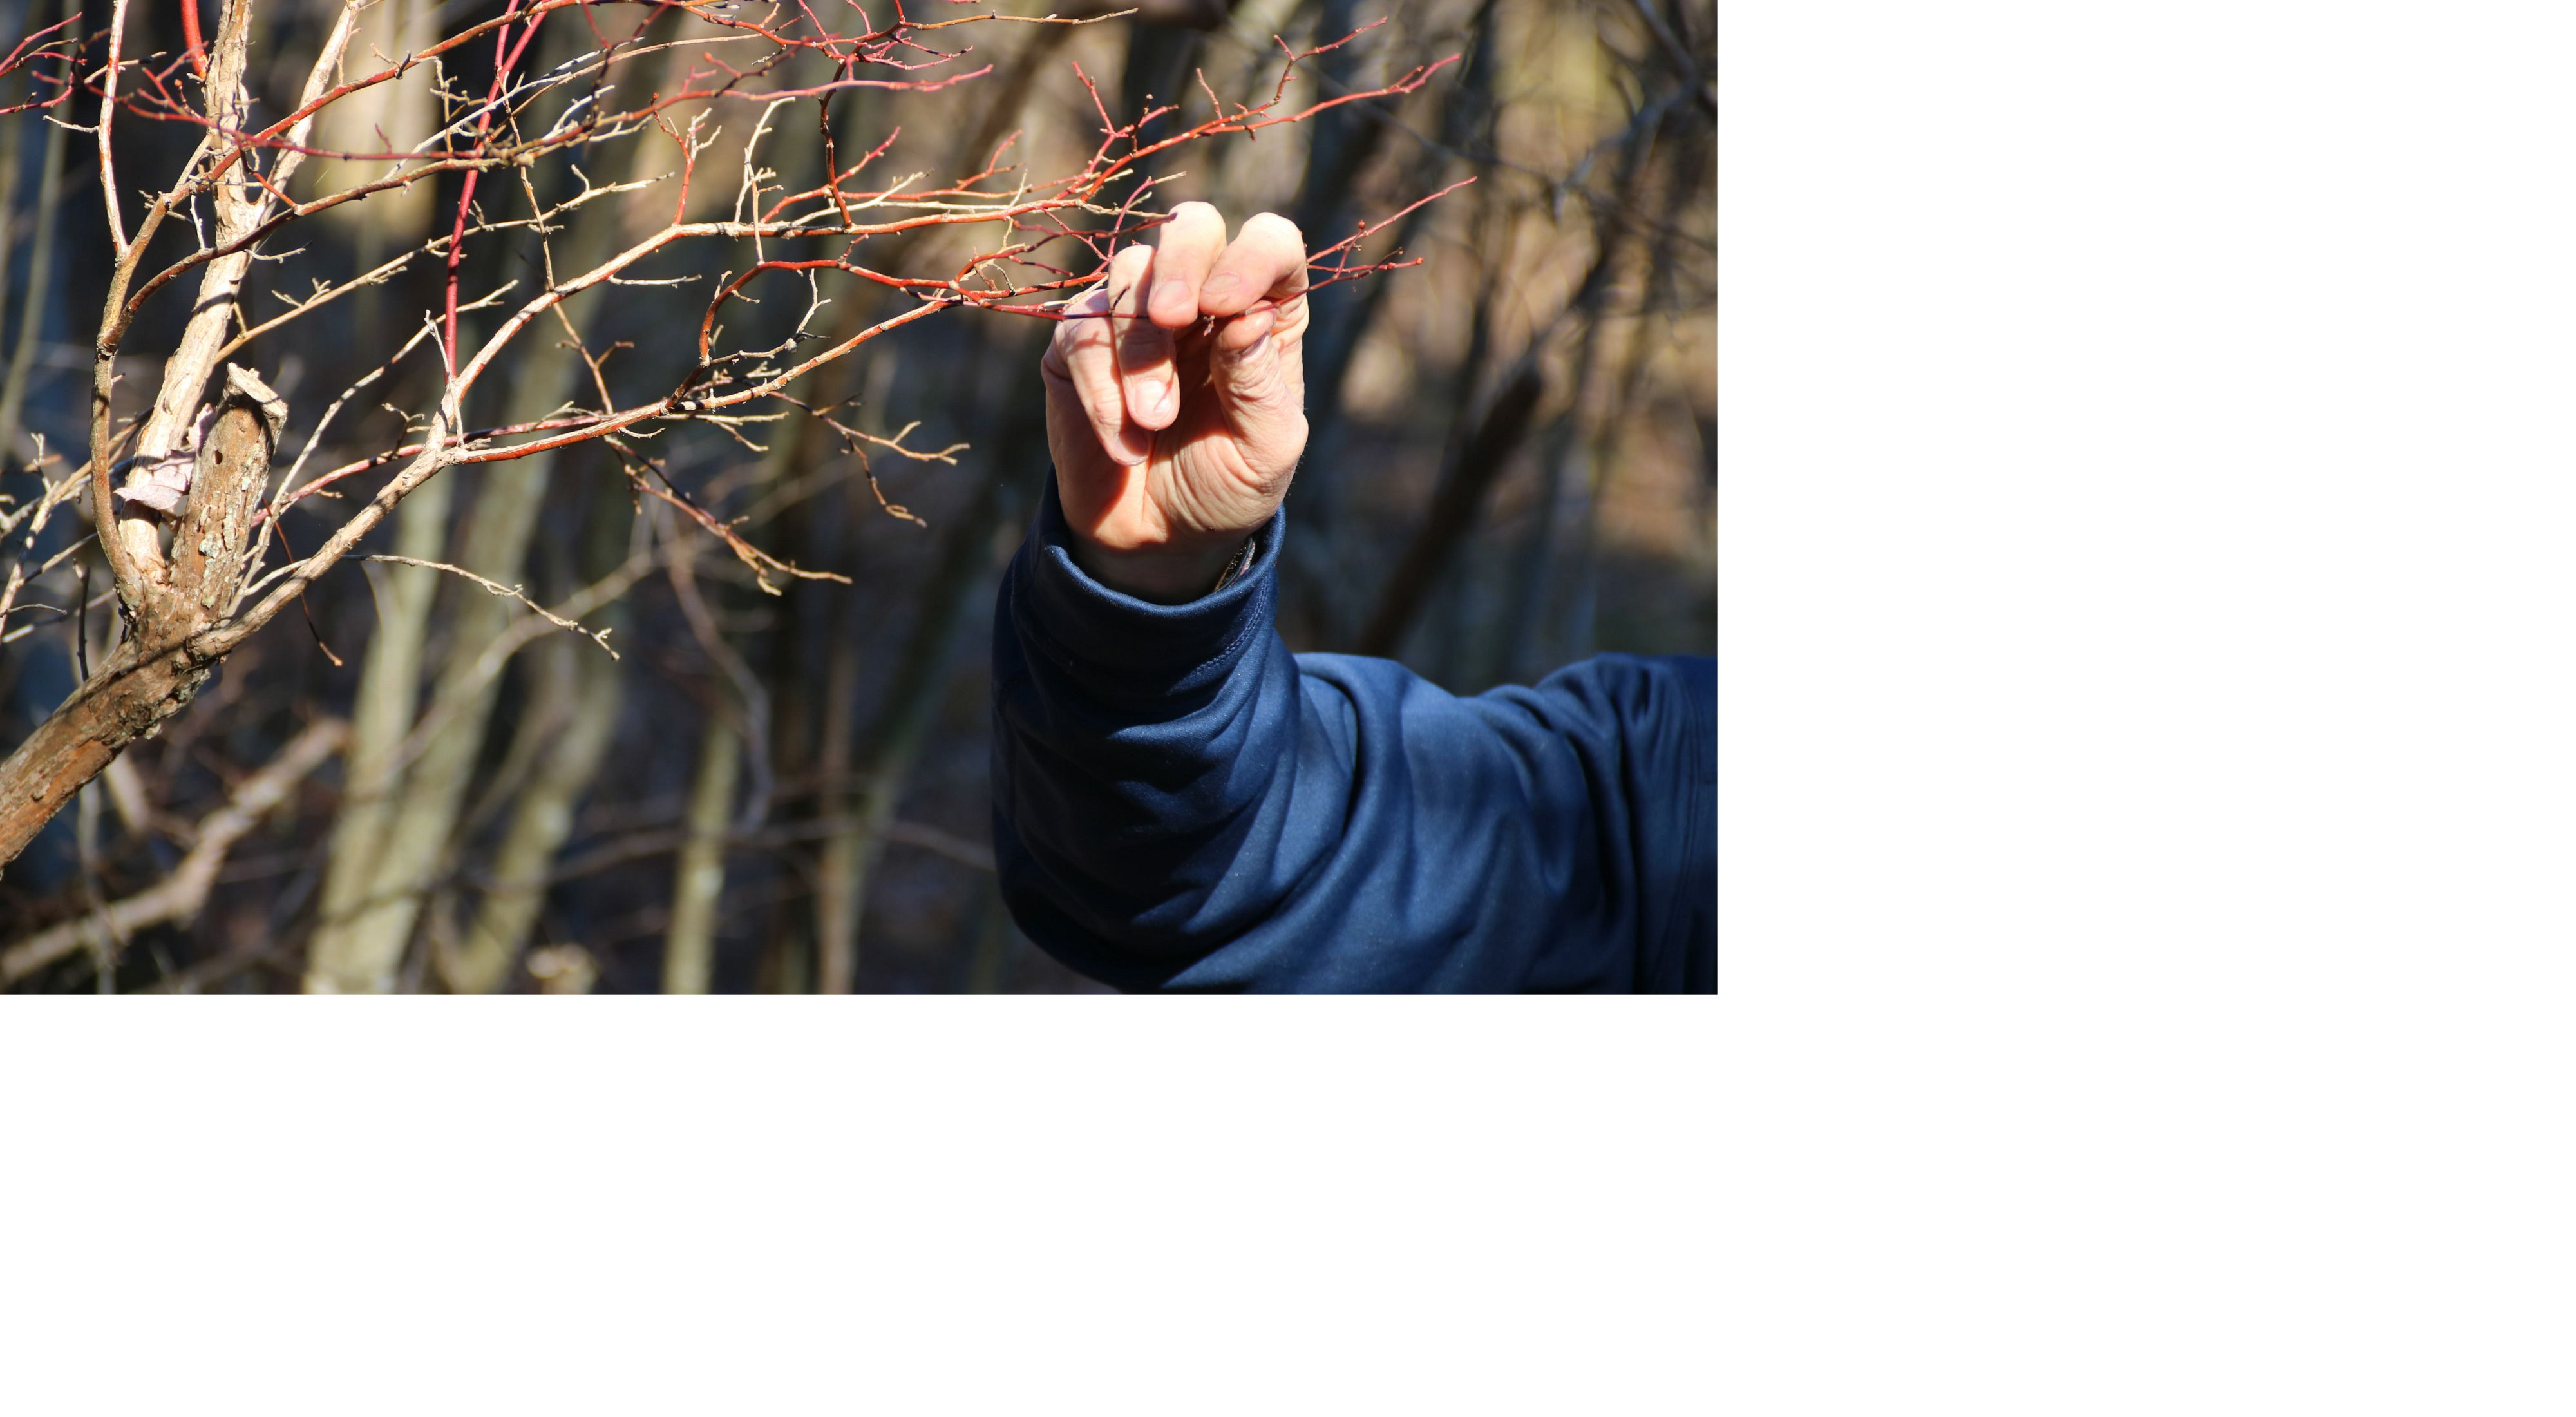 A hand holds up a blooming branch..